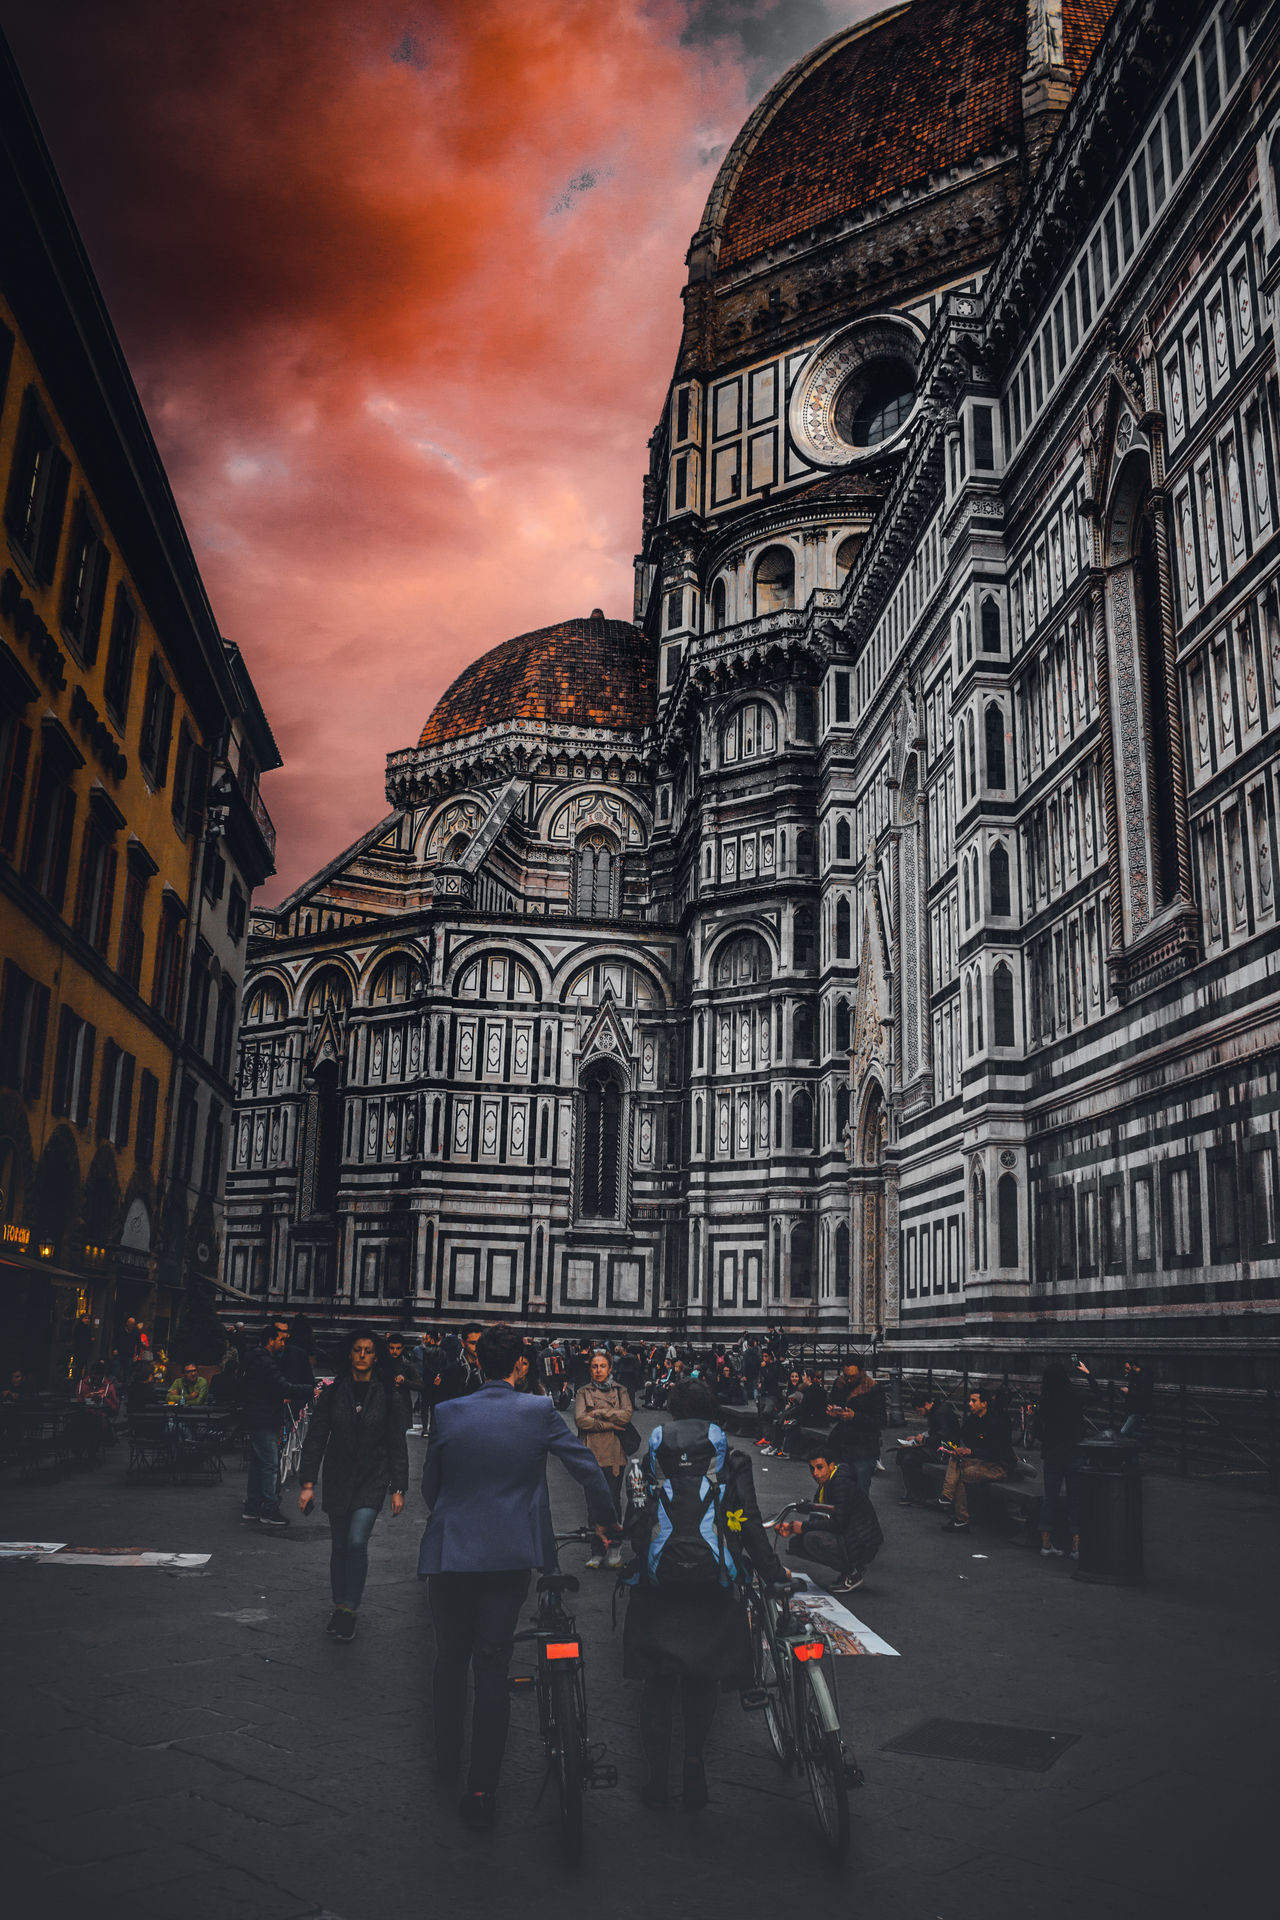 Architecture City People Built Structure Building Exterior Outdoors Sky EyeEm Clouds EyeEm Best ShotsEyeEm Best Edits Red Clouds Duomo Florence Italy City Eye4photography  Low Angle View Europe EyeEm Gallery Cloud - Sky Colors Travel Destinations